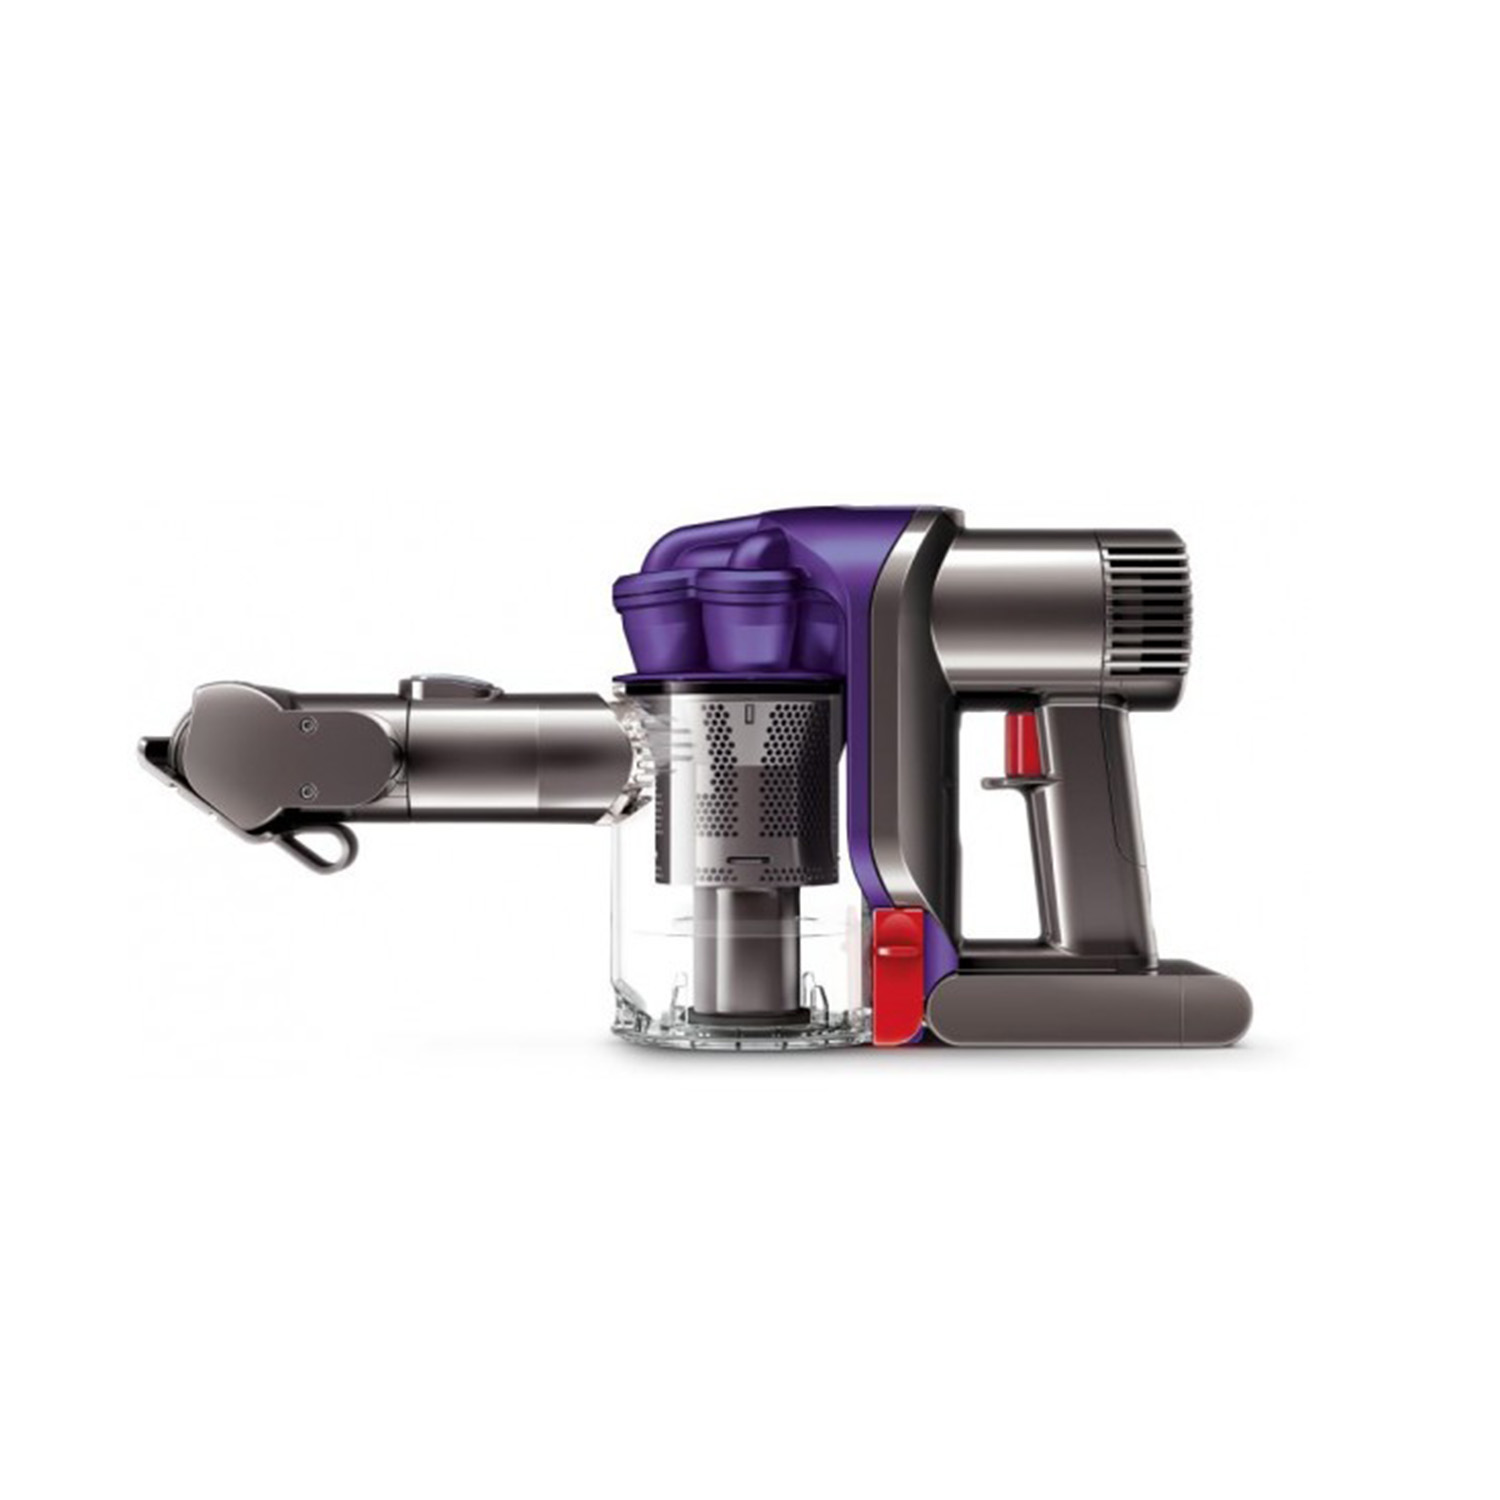 dyson aspirateur main dc43h animal pro achat aspirateur sans sac silencieux. Black Bedroom Furniture Sets. Home Design Ideas